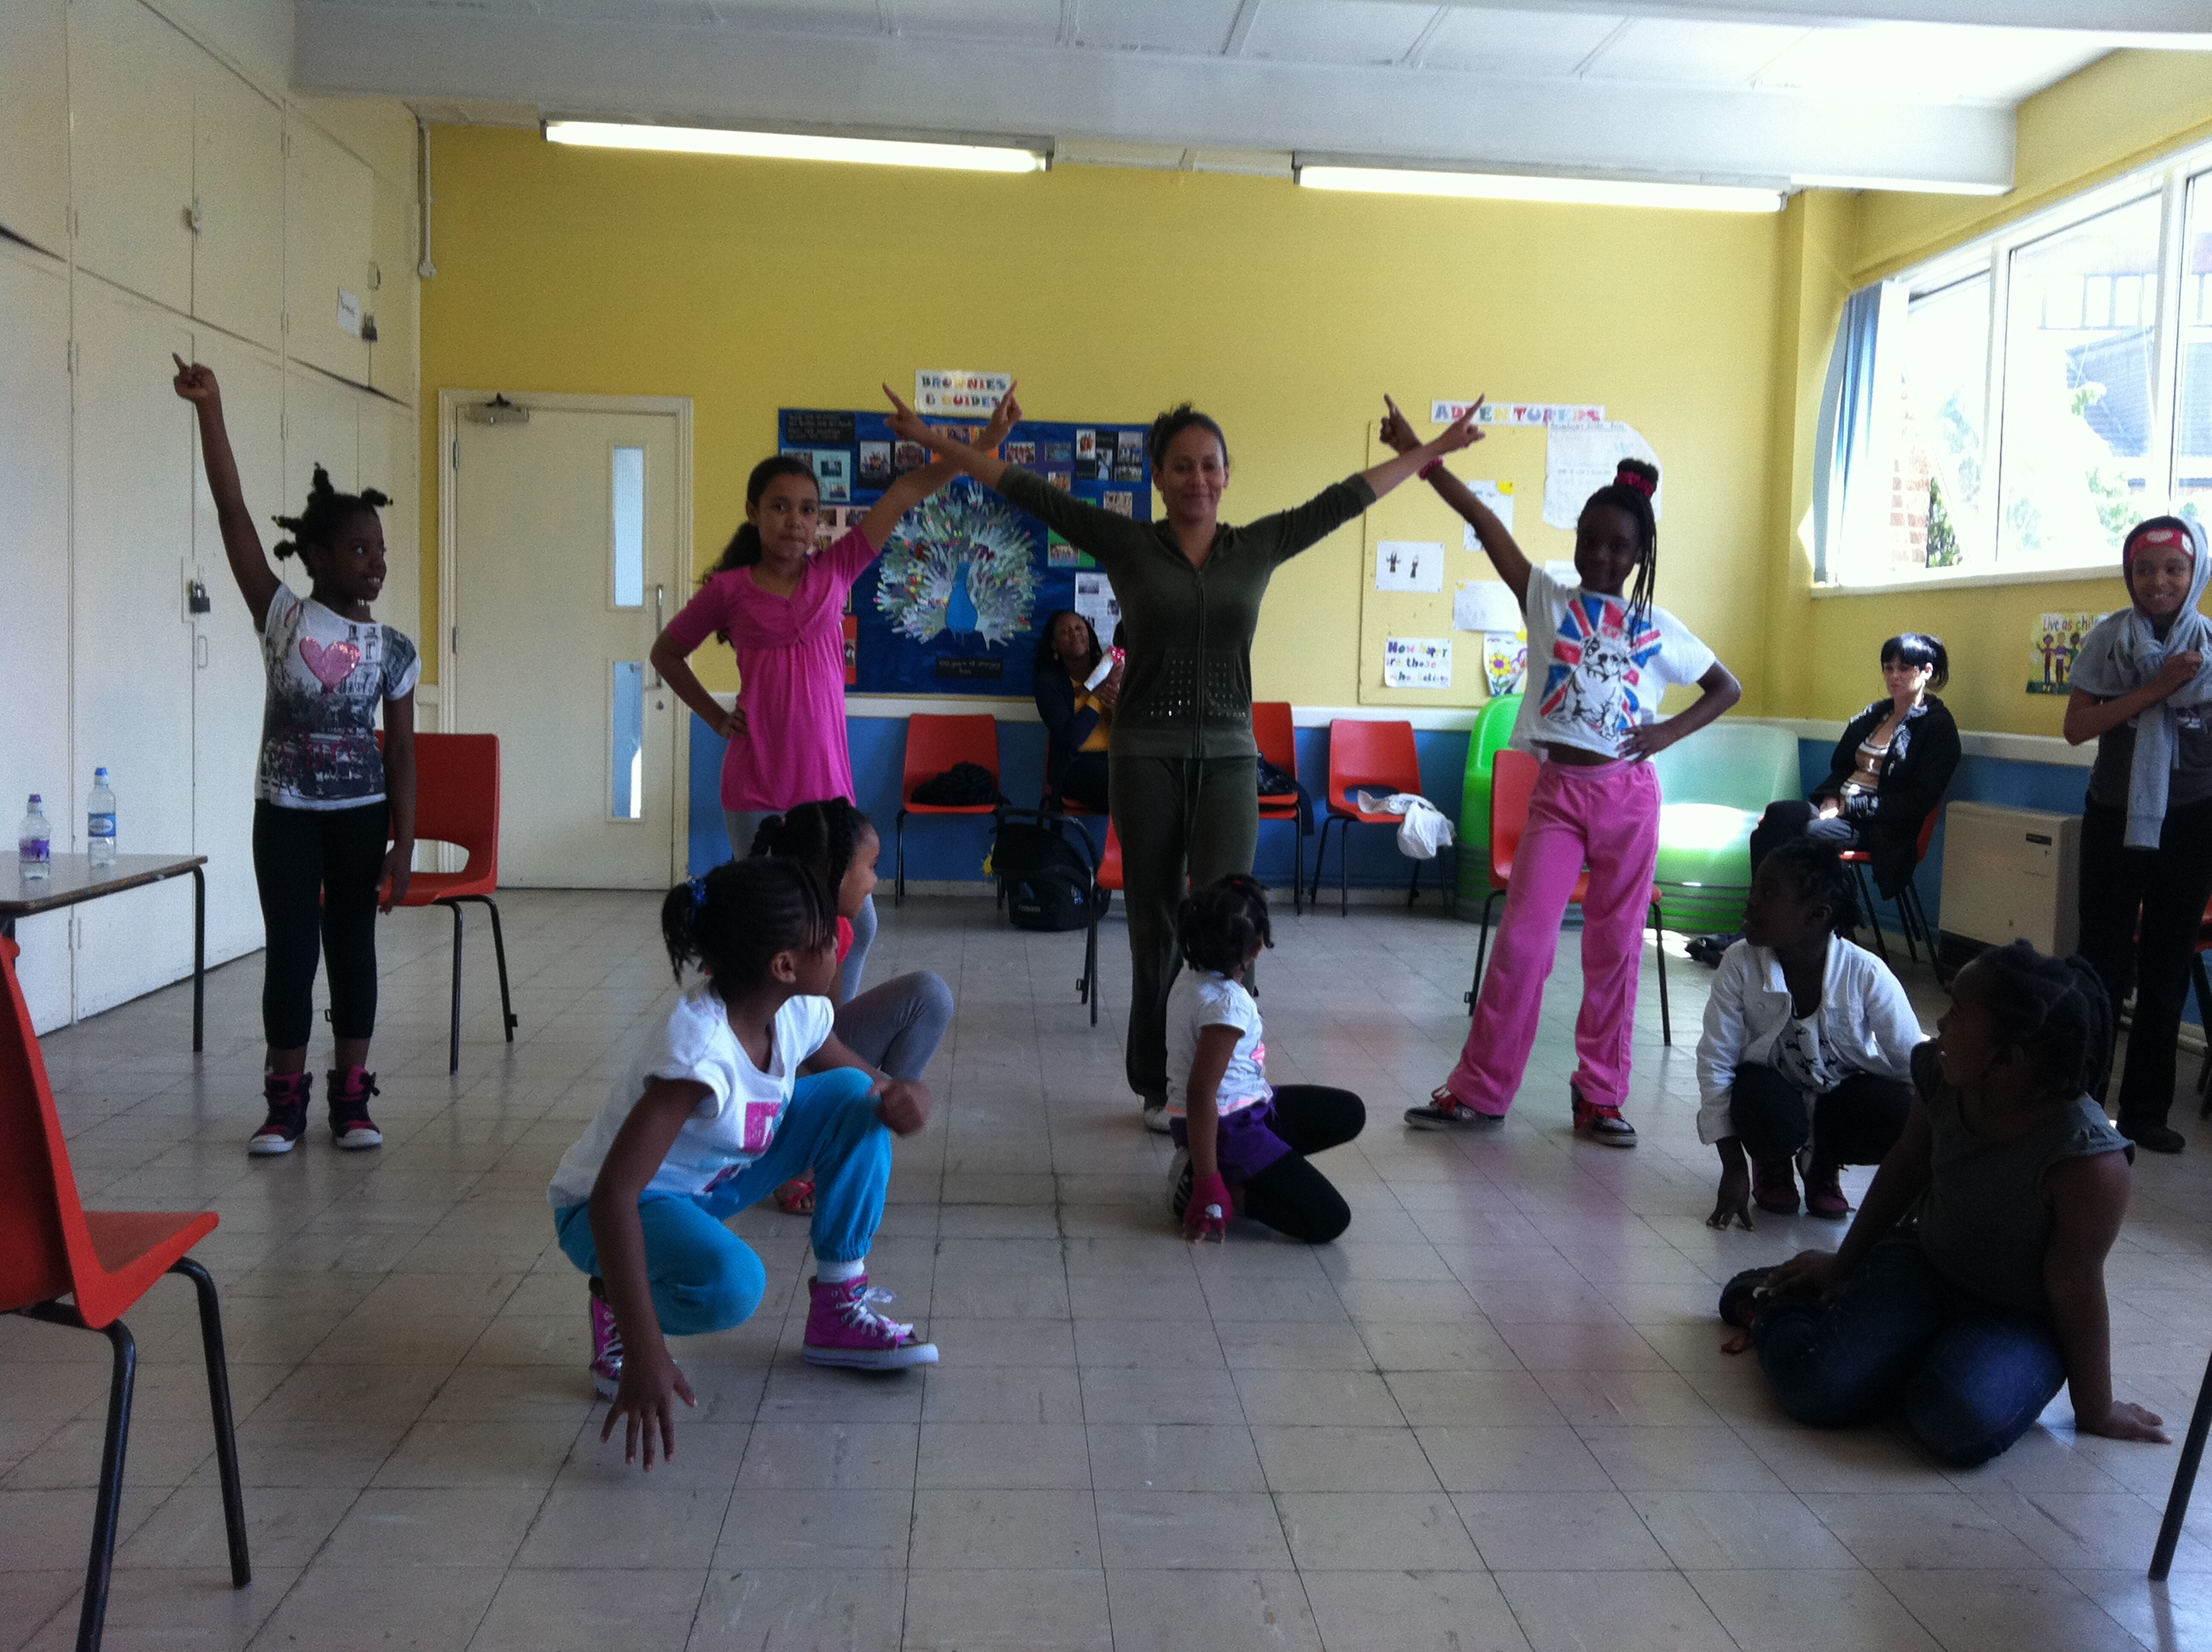 At the dance school 2